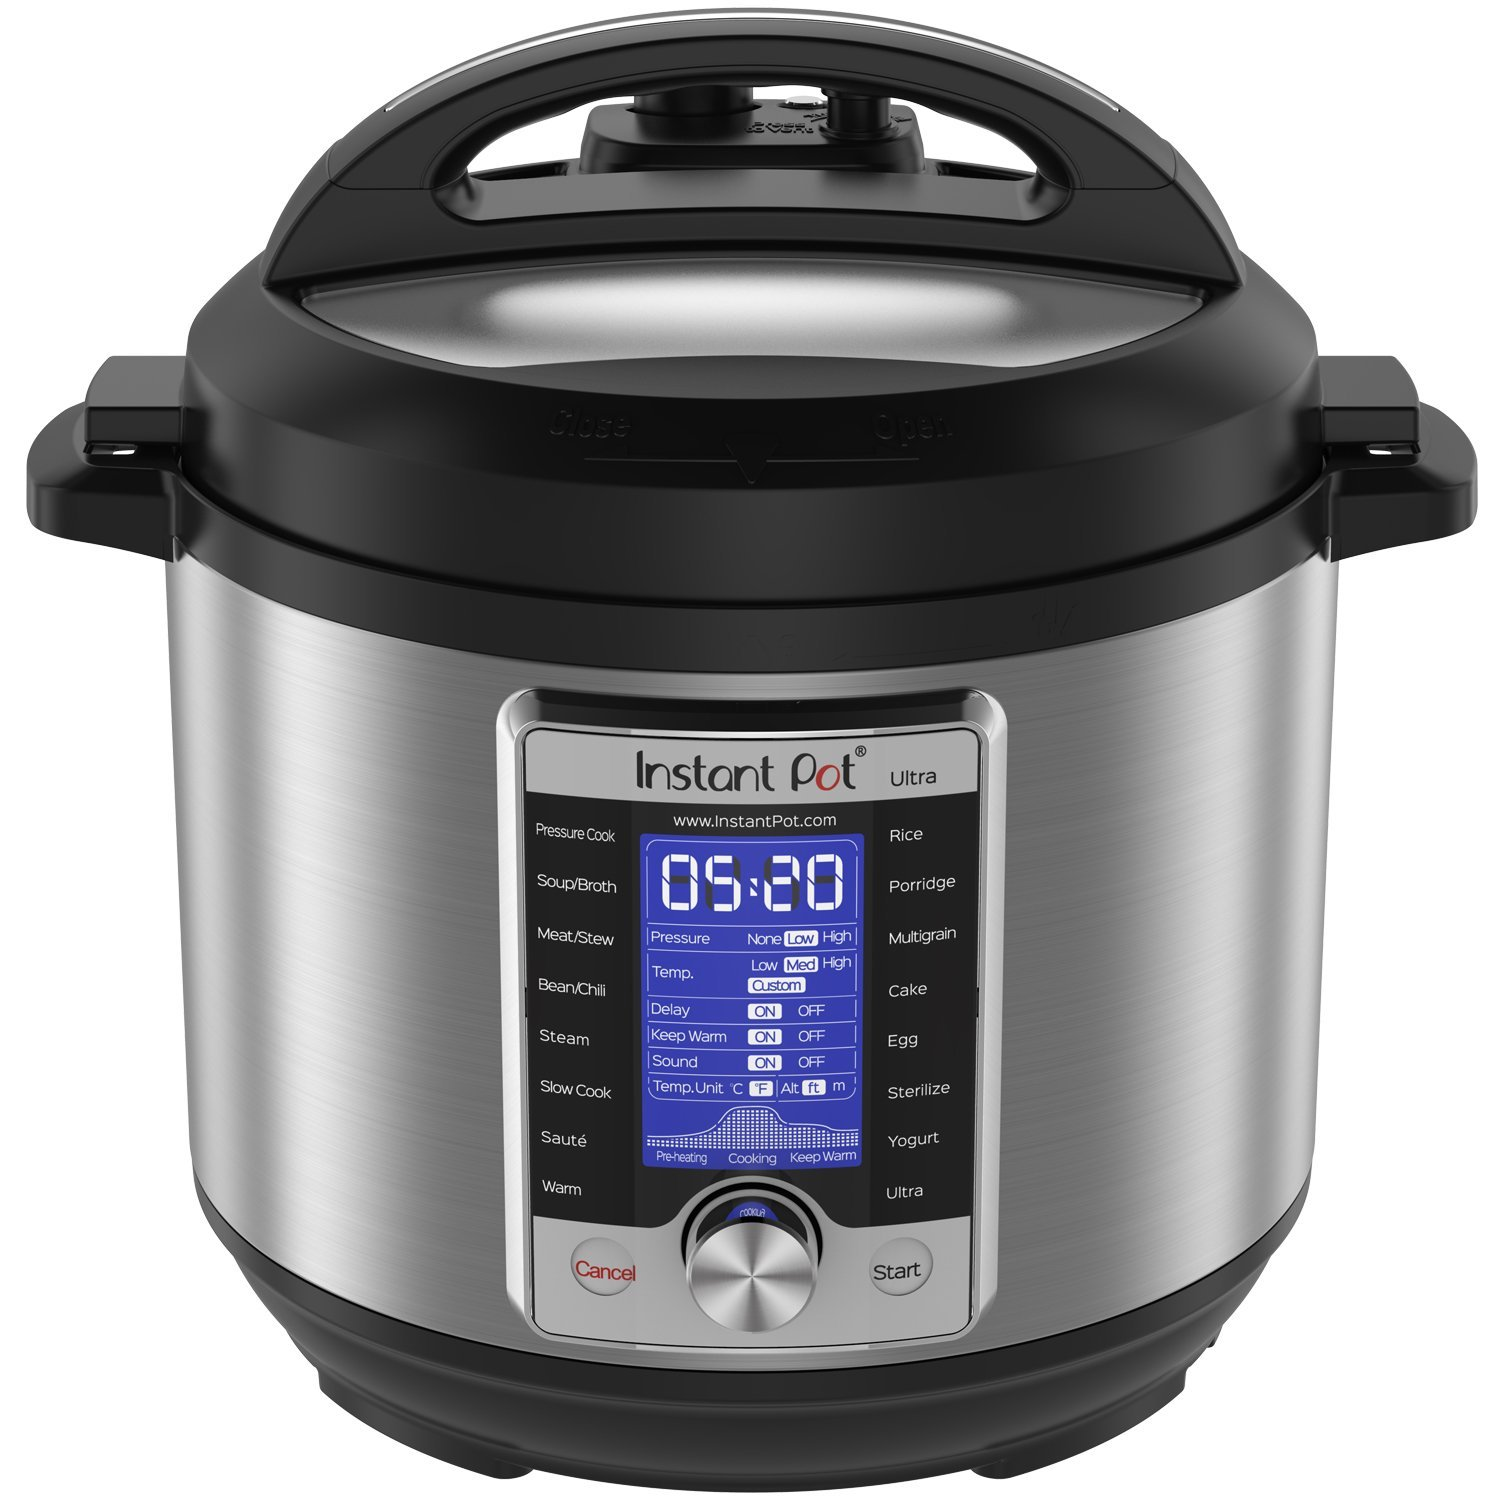 Review of Instant Pot Ultra 6 Qt 10-in-1 Multi- Use Programmable